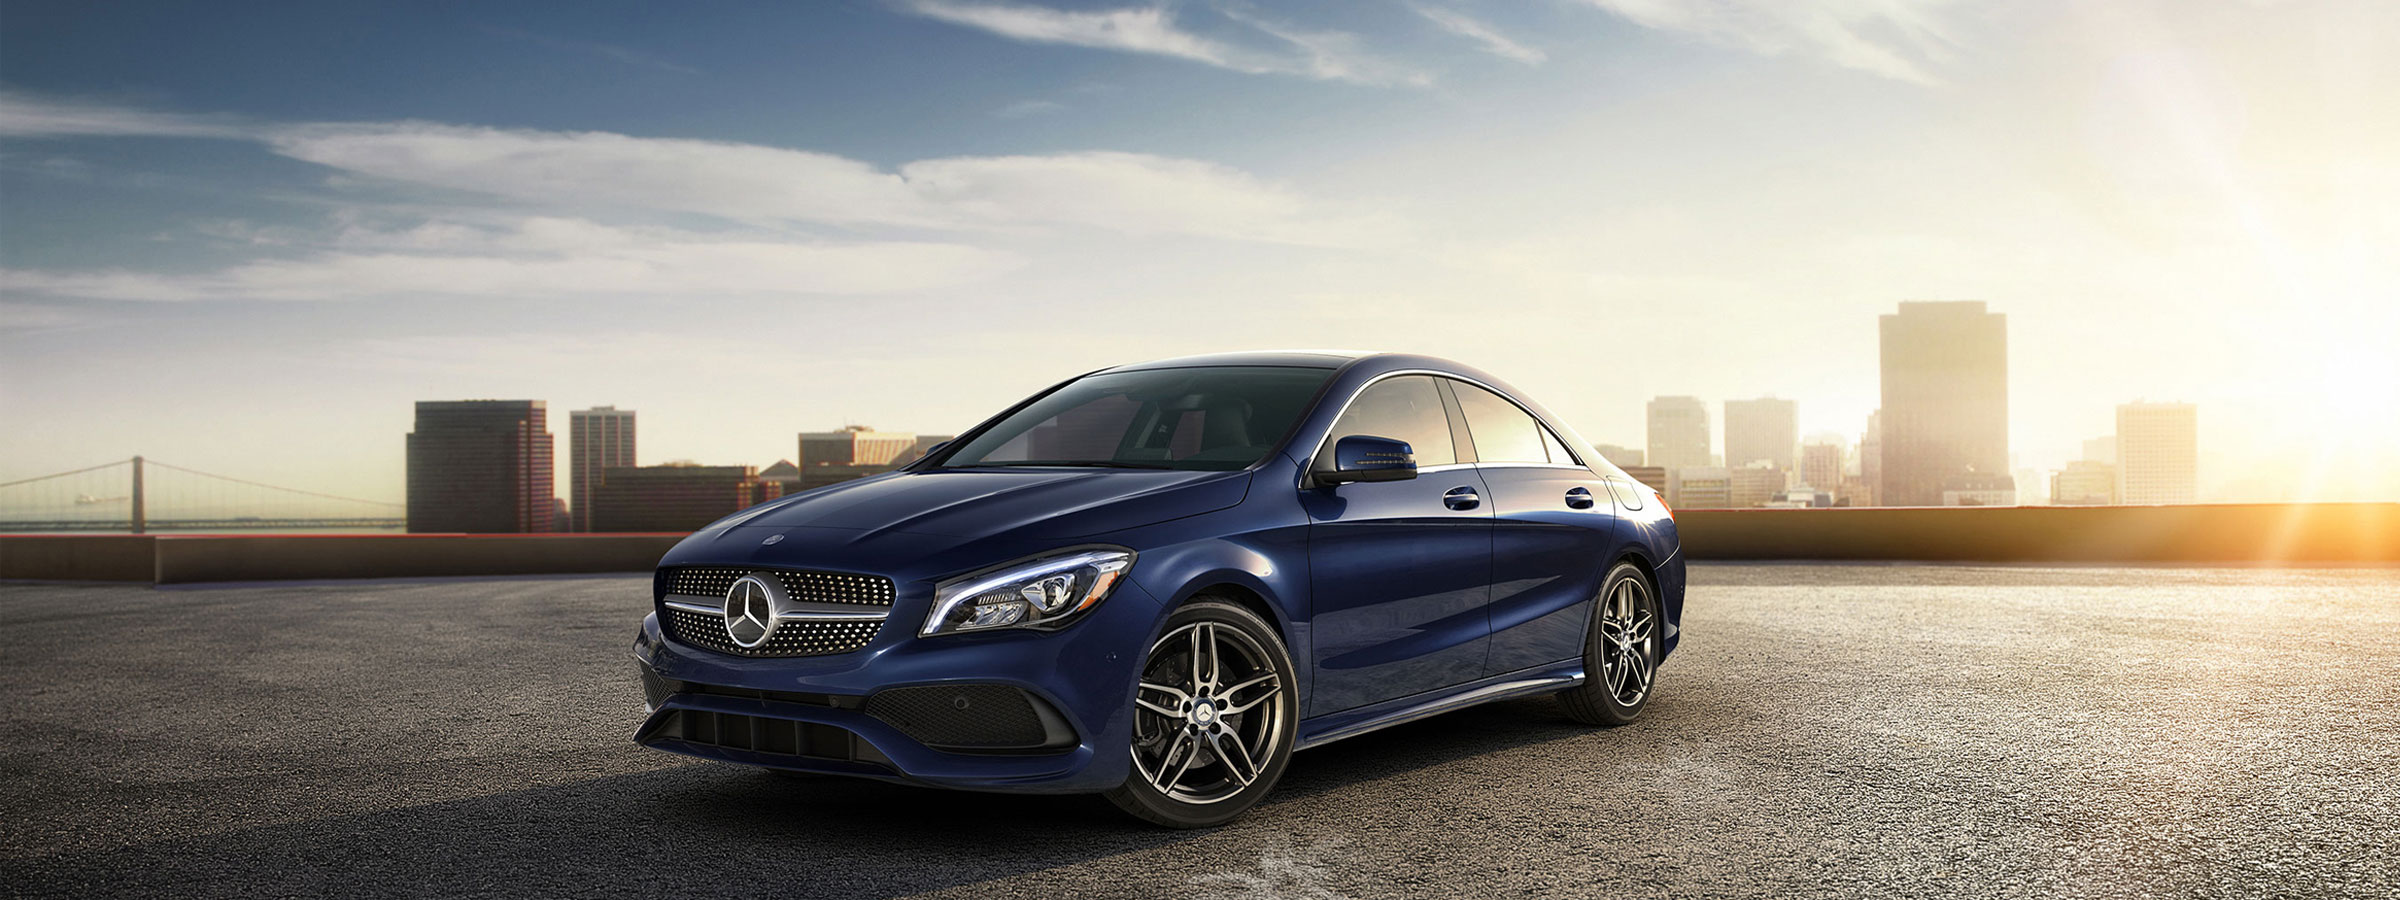 coupe all etobicoke inventory mercedes price owned wheel cla pre certified benz in used drive